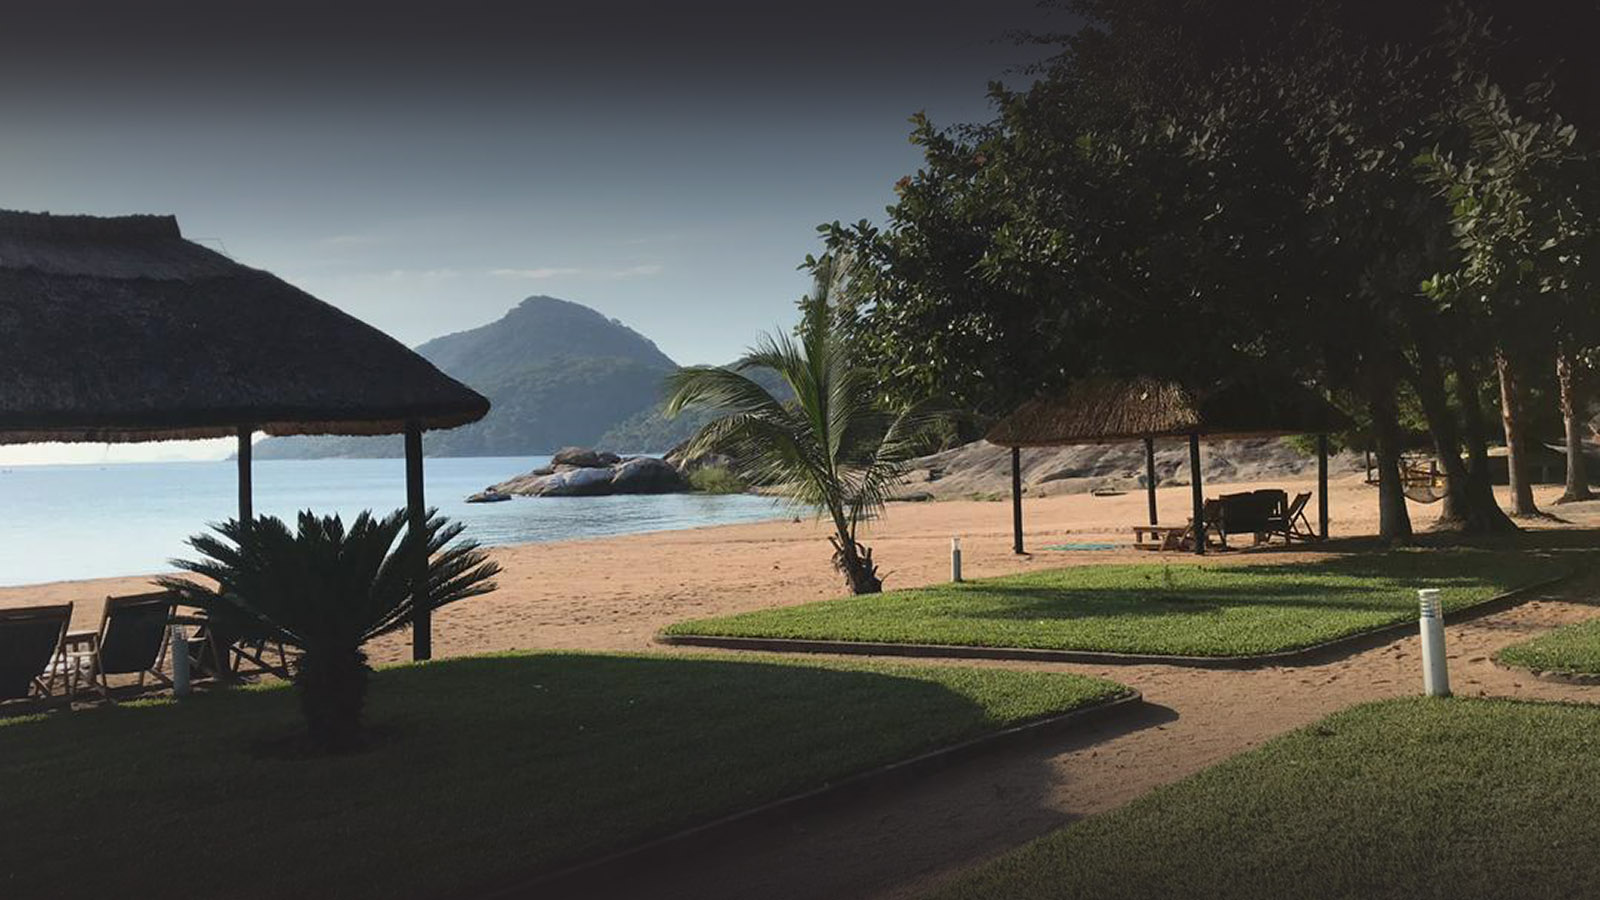 chembe eagles nest lodge-lake-malawi-lodges-malawian-style-private-beach-golden-beaches-clear-waters-accommodation-chalets-beach